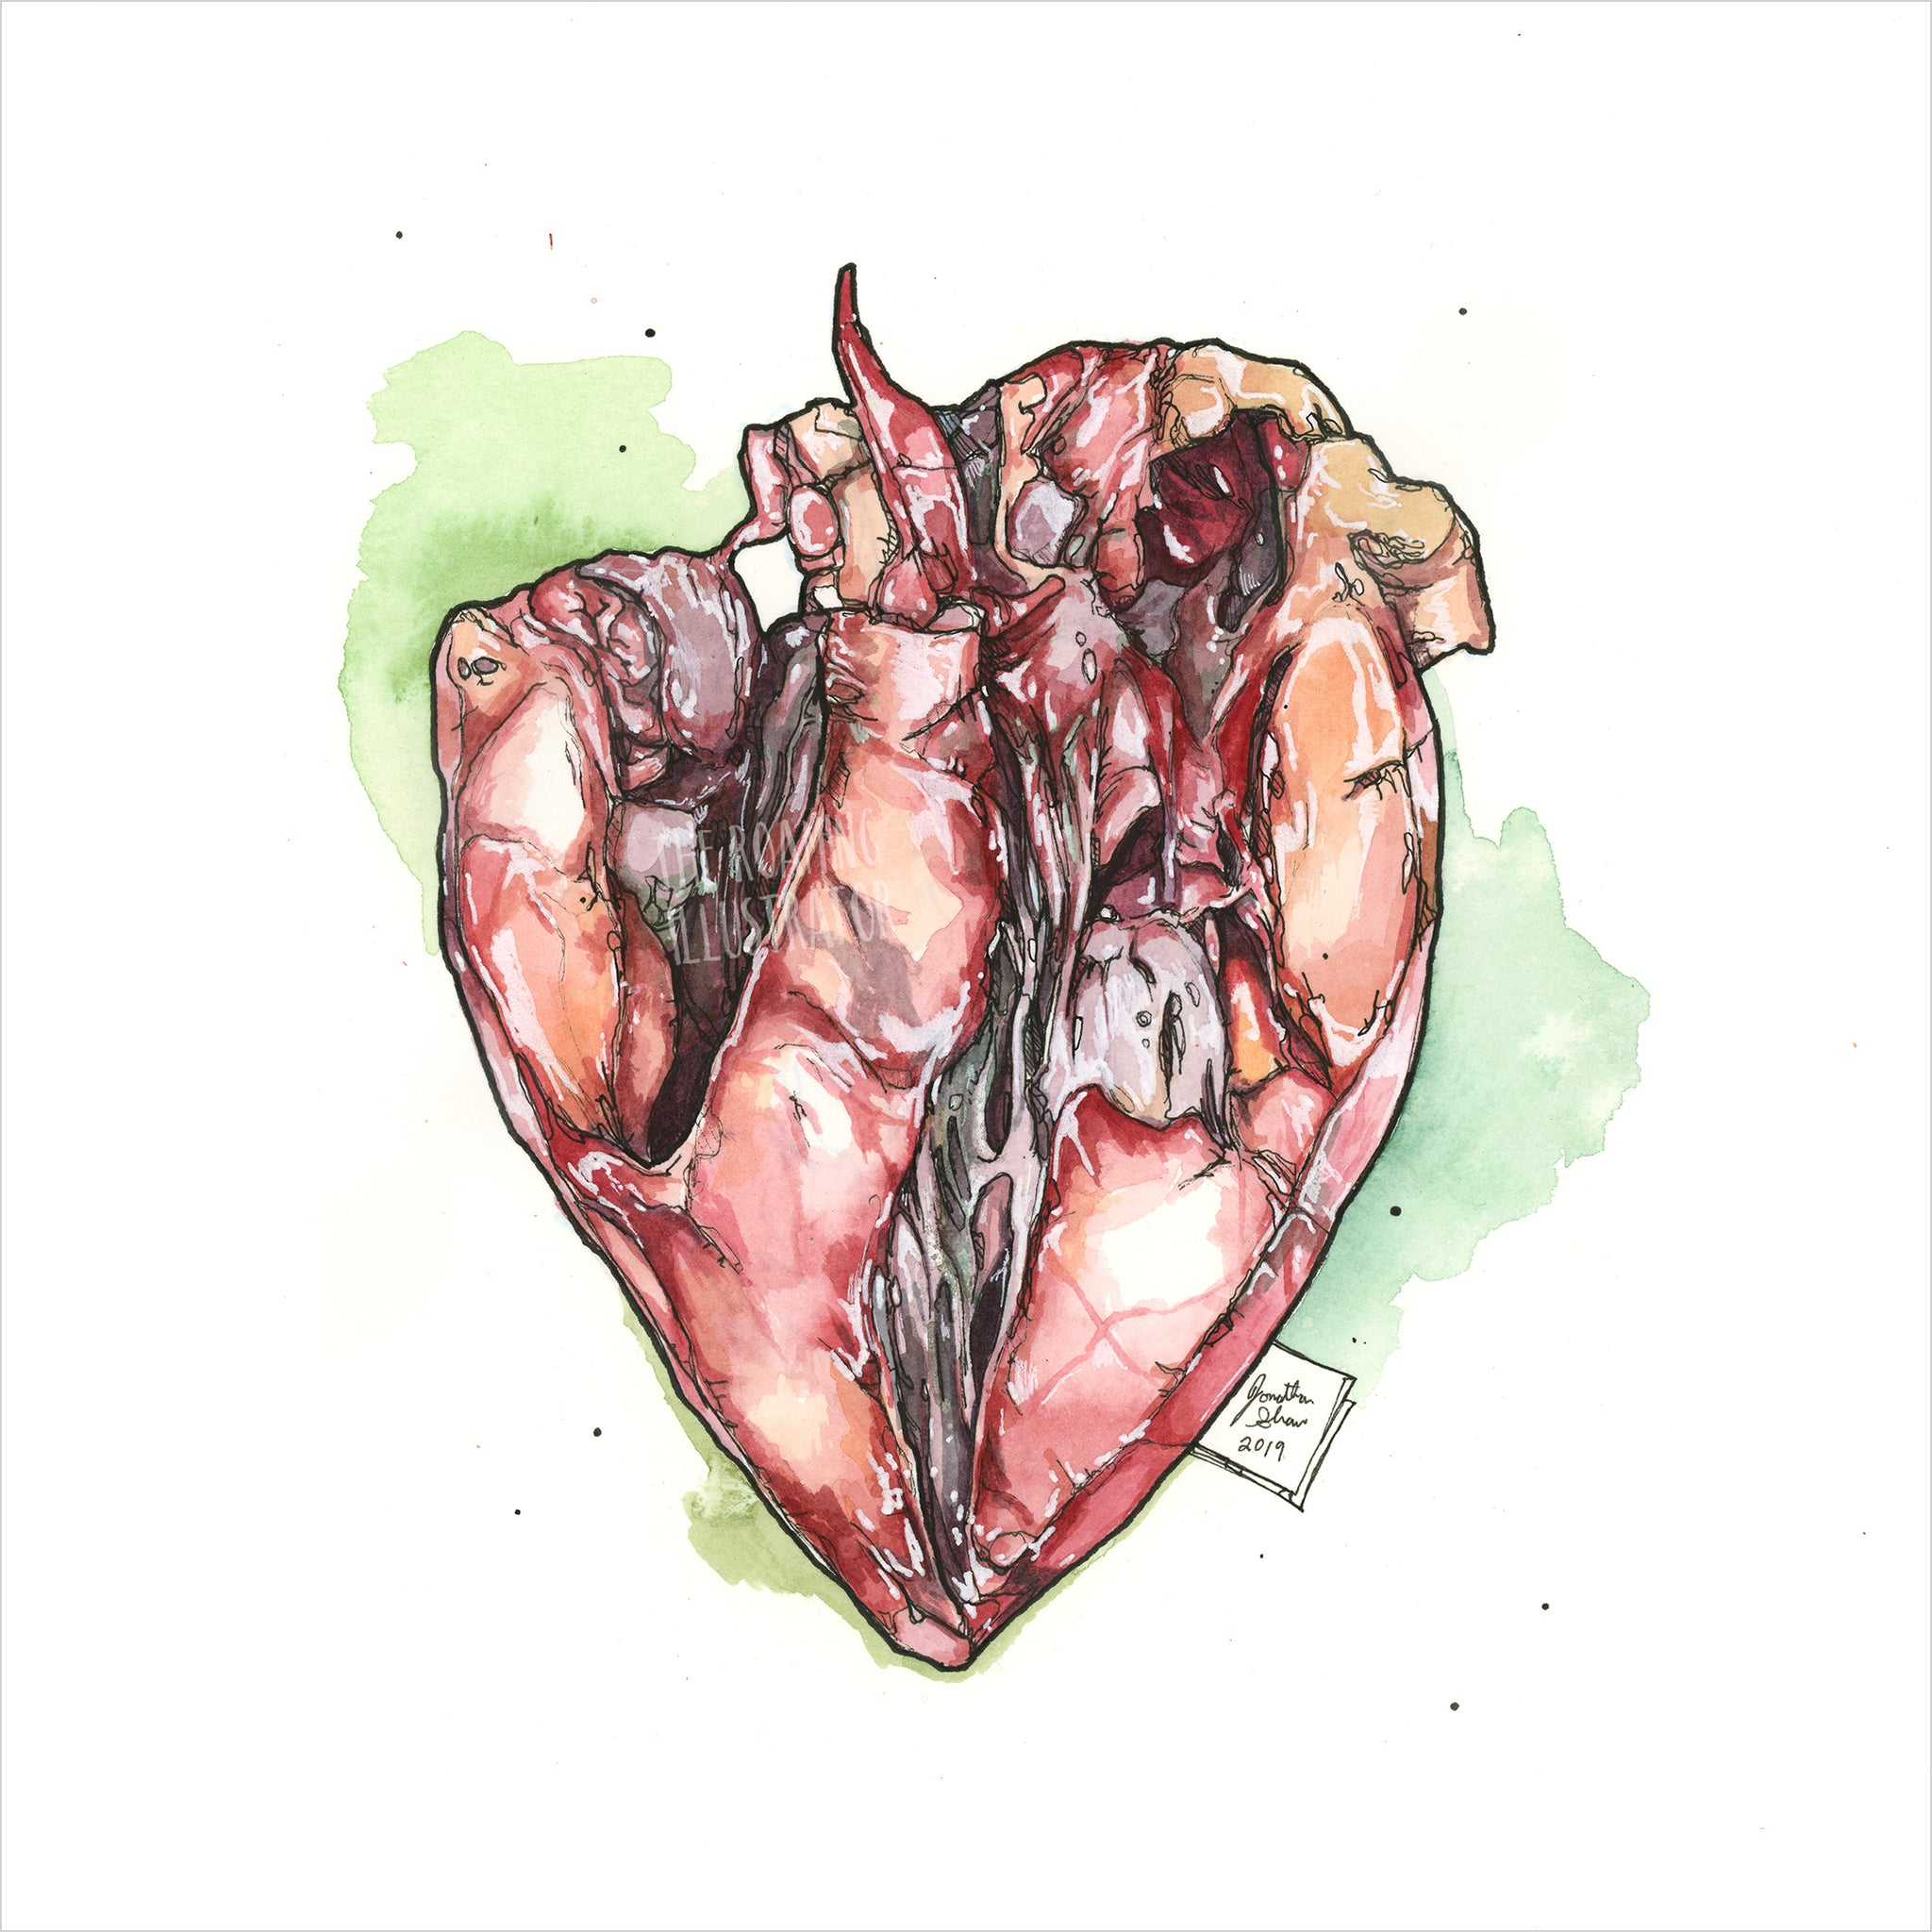 """Heart"" - Original 8x10 Illustration (SOLD)"